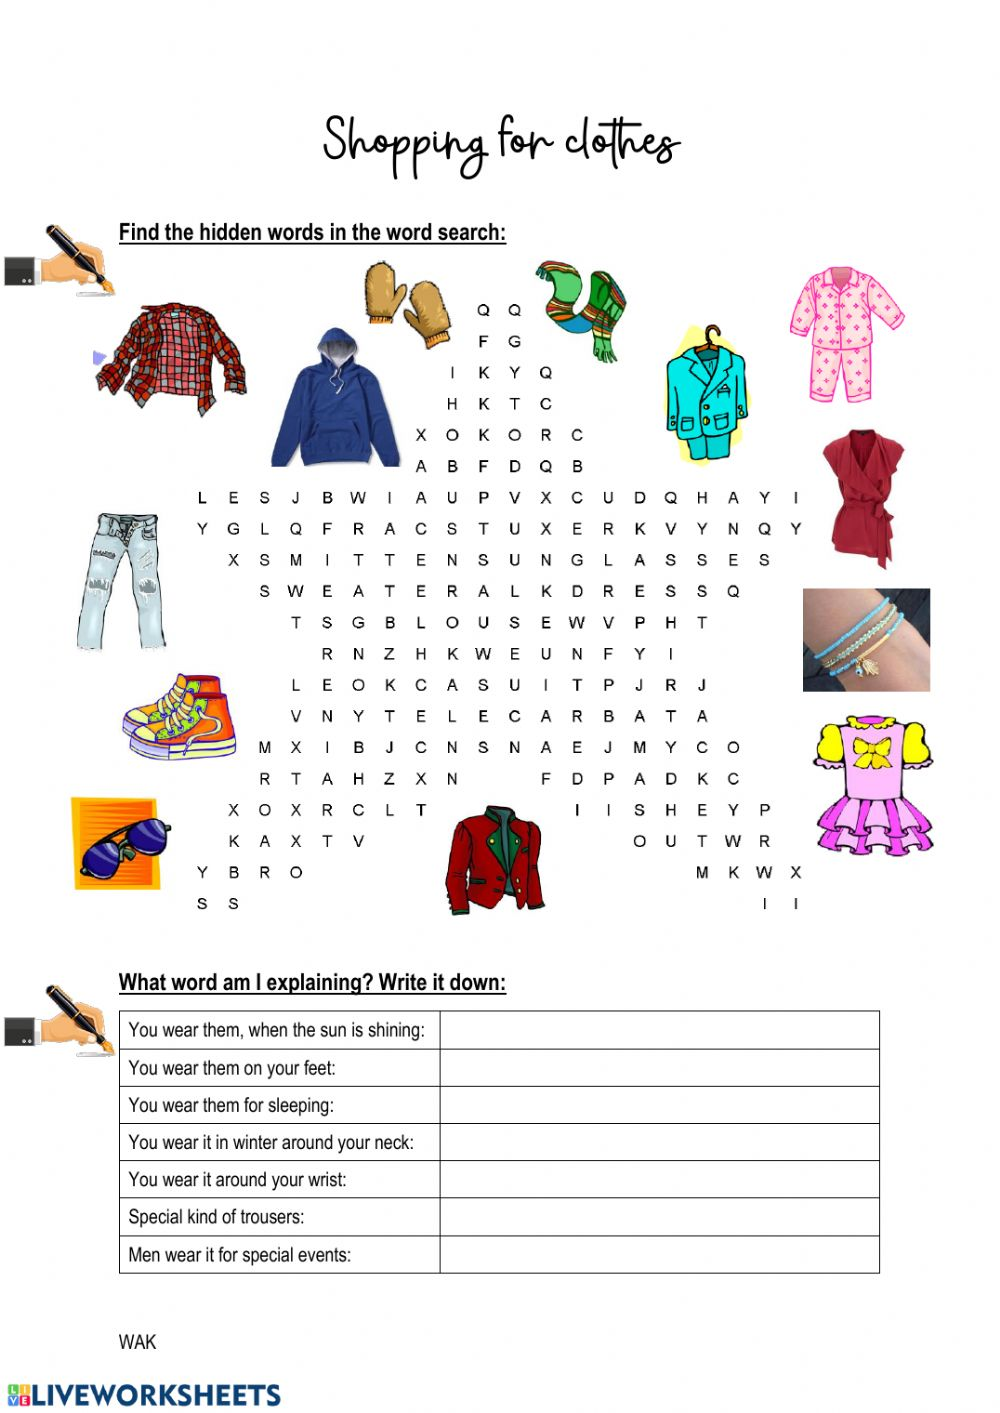 hight resolution of Shopping for clothes worksheet